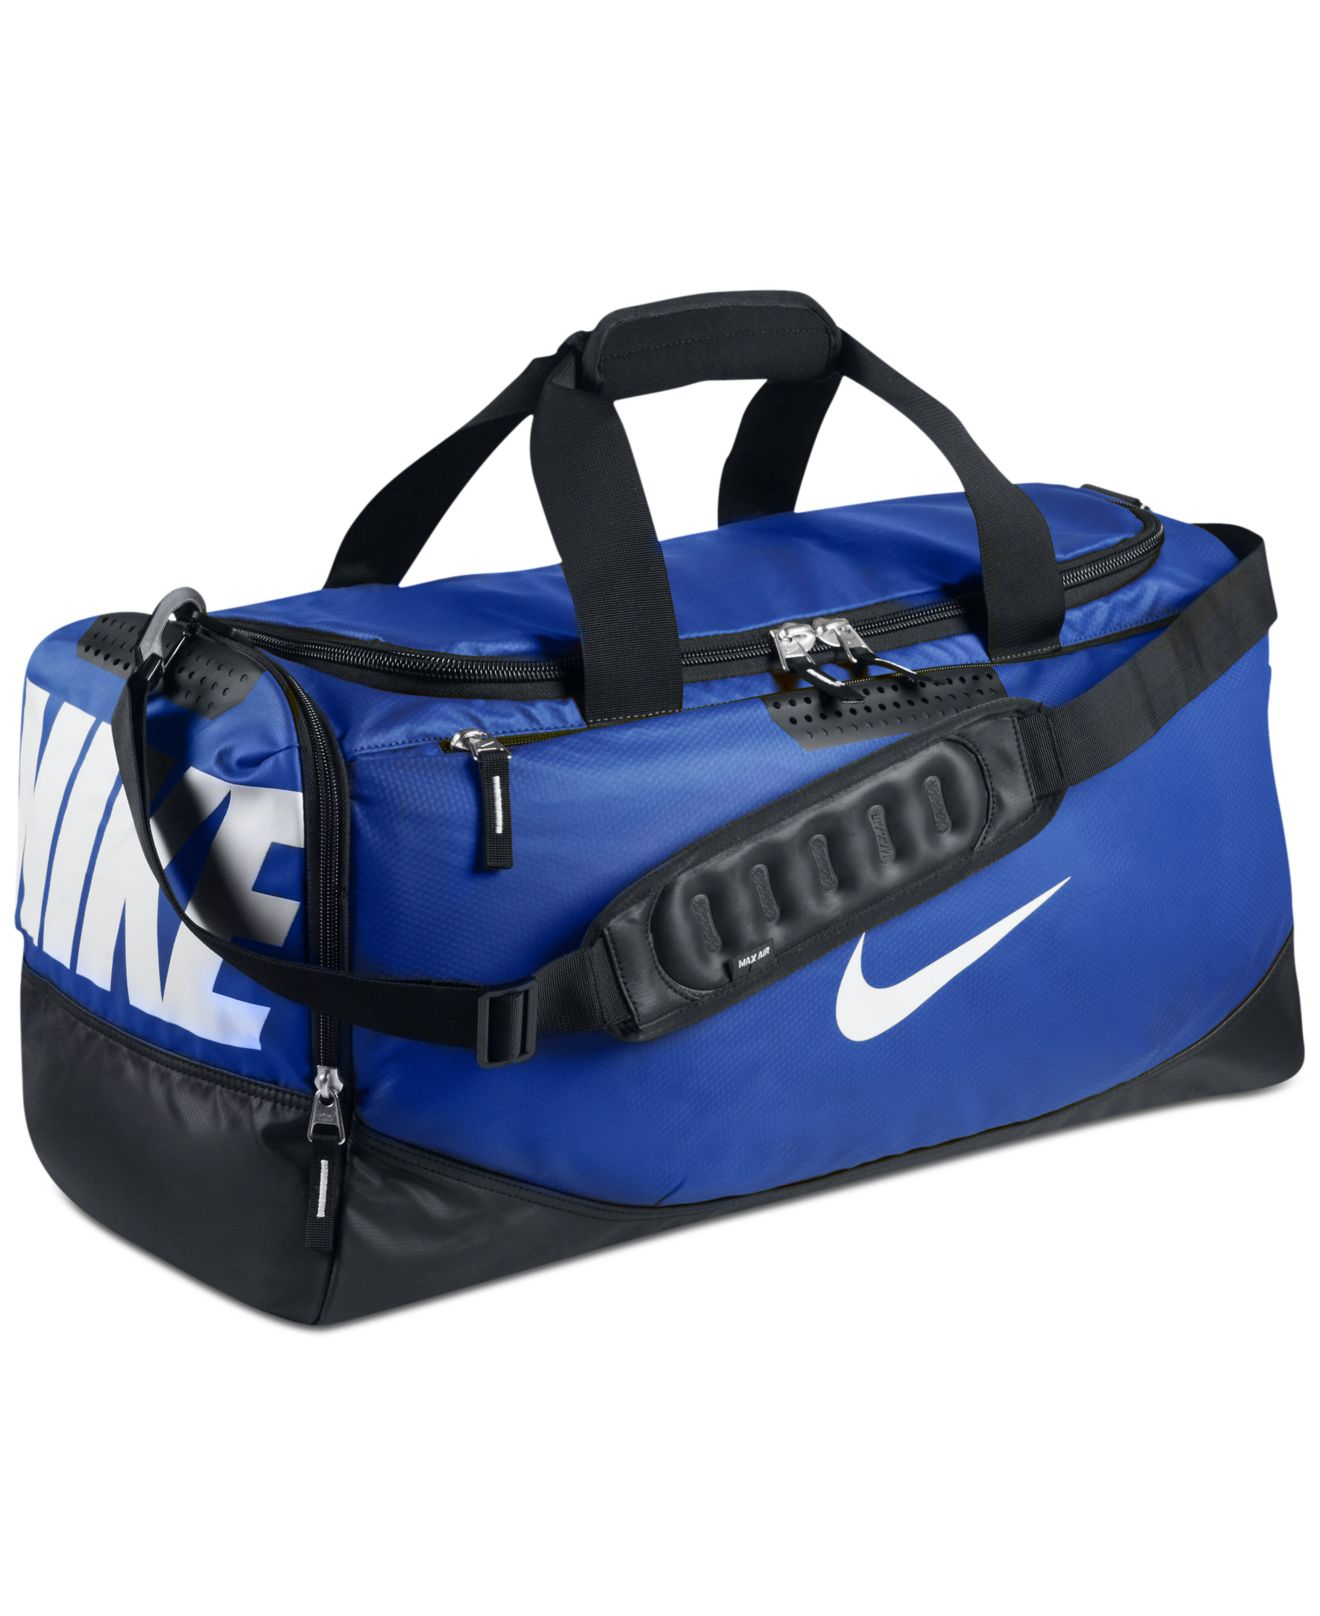 b33a5b056a Lyst - Nike Water Resistant Team Training Medium Duffle Bag in Blue ...